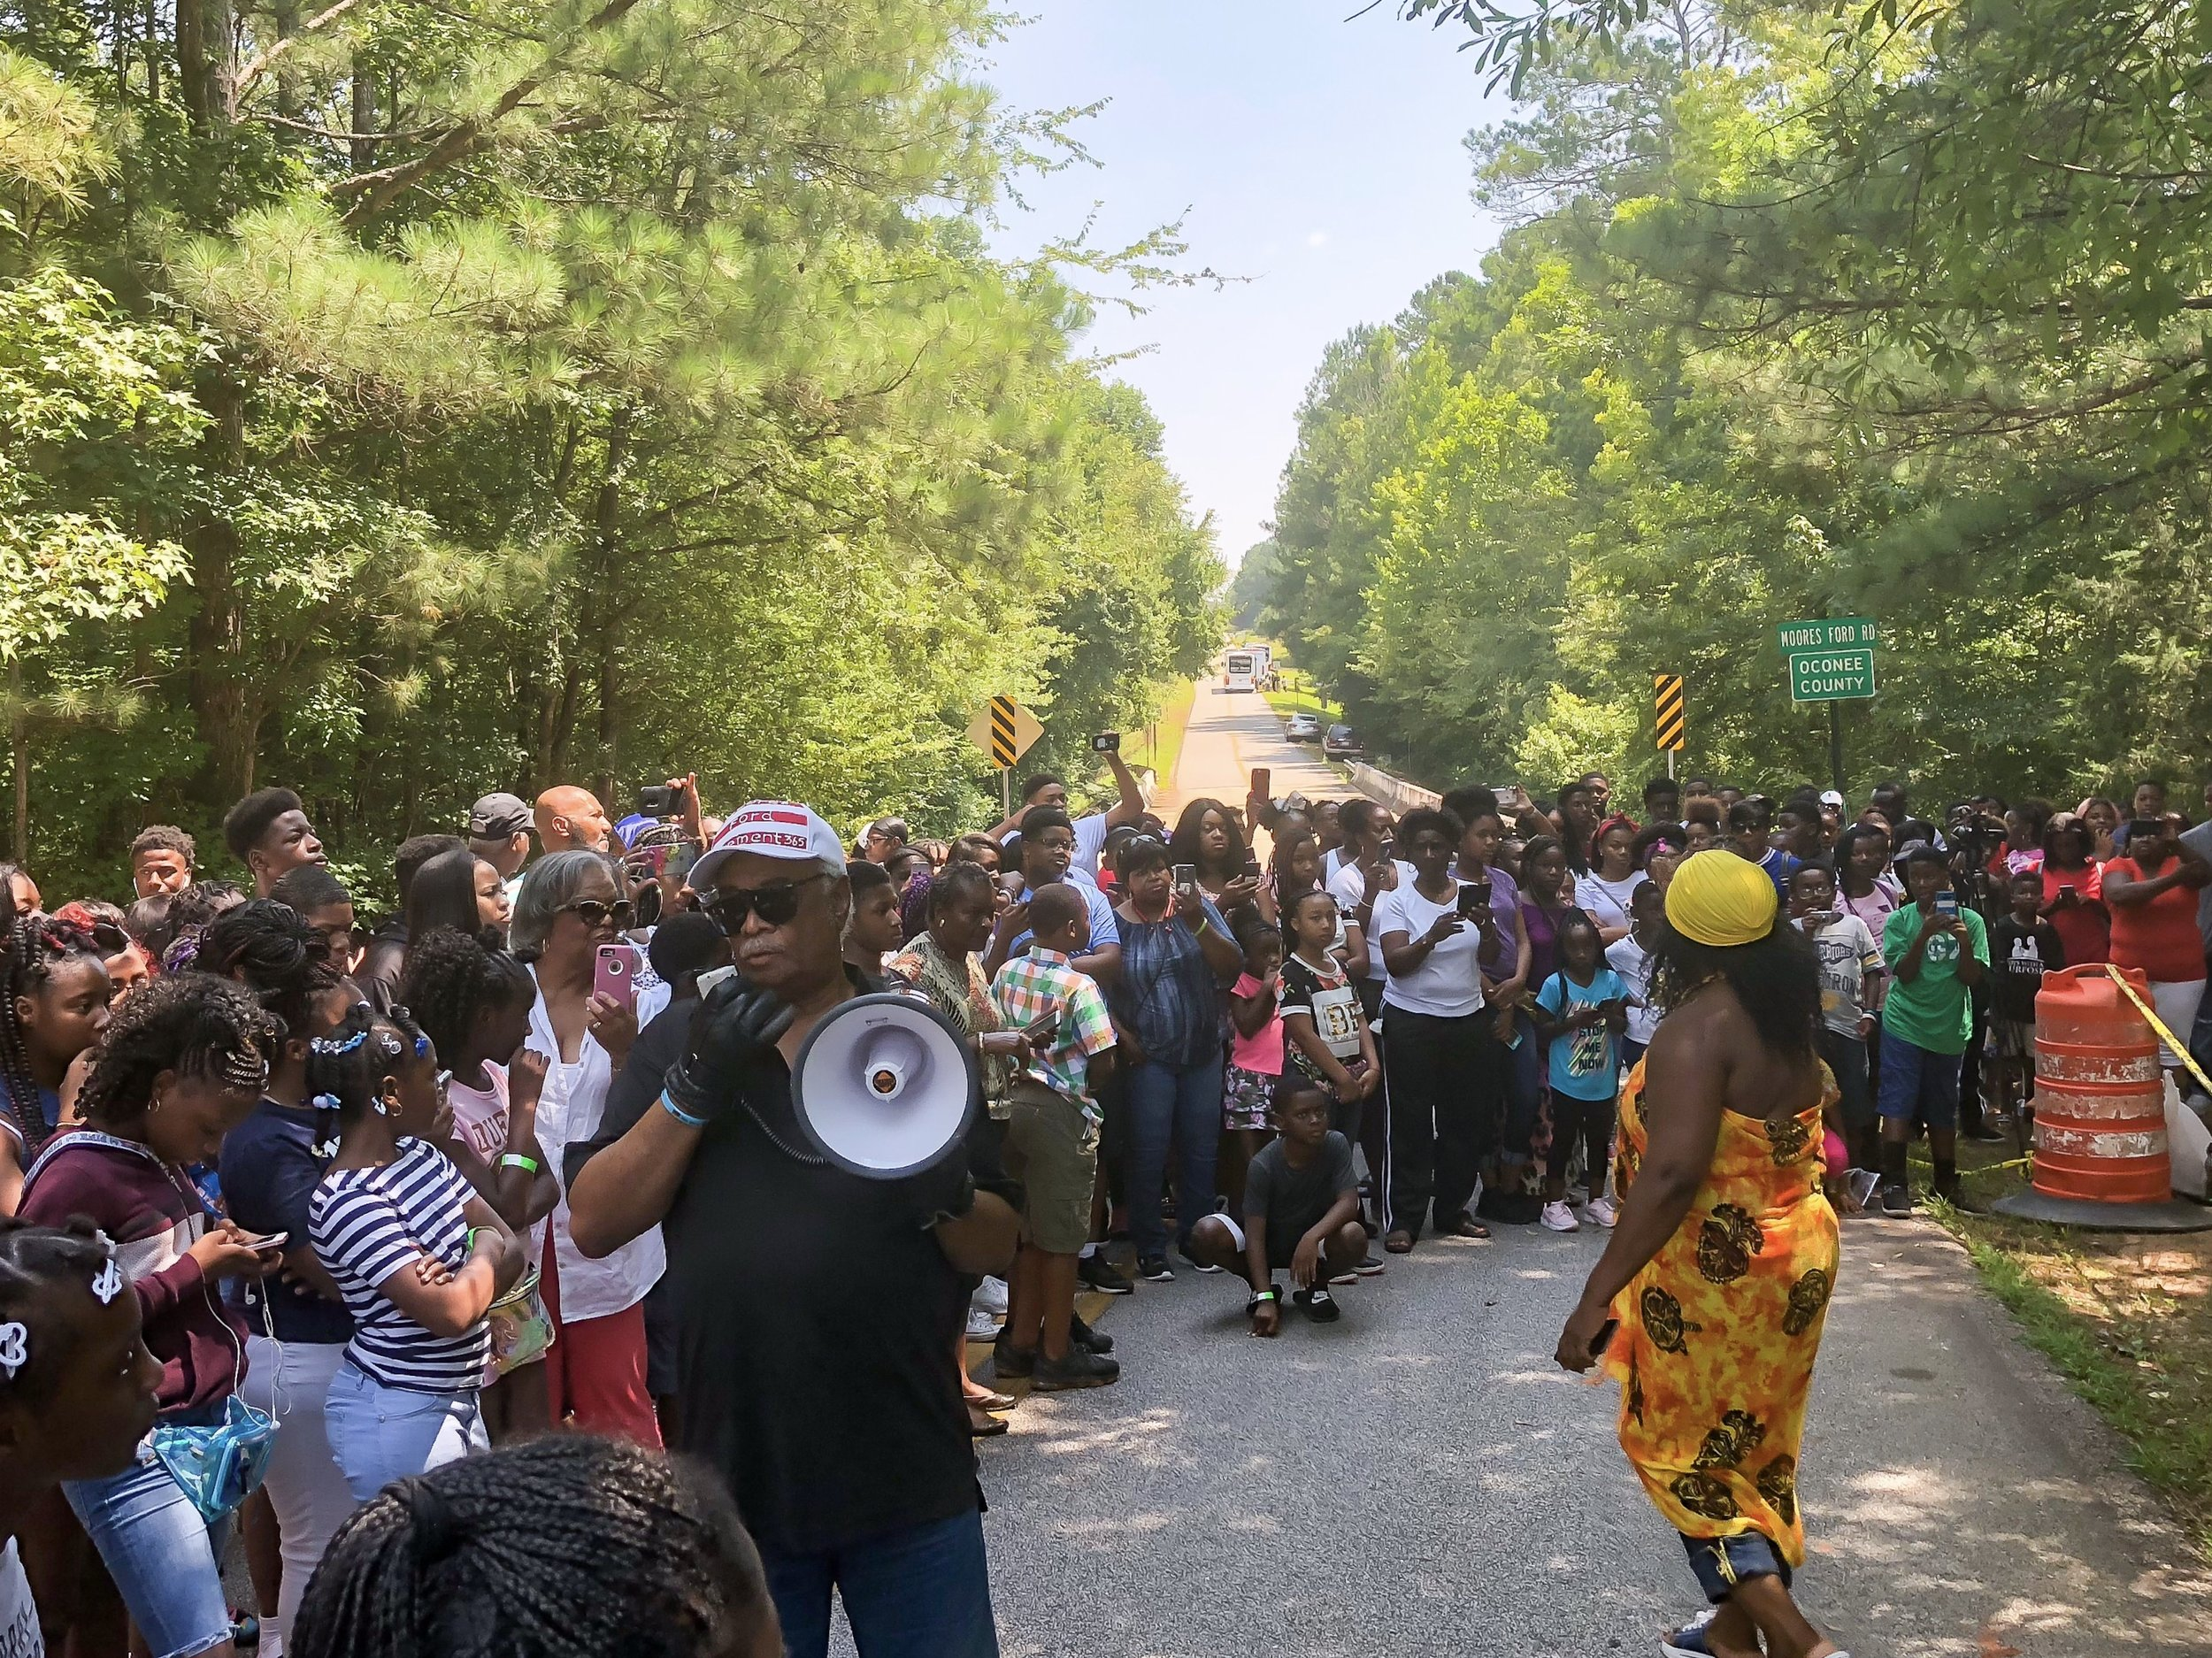 200 students from surrounding southern states visit the location of the Moore's Ford Lynching to watch an abbreviated version of the annual lynching re-enactment one day before the annual event. Tyrone Brooks leads the event.